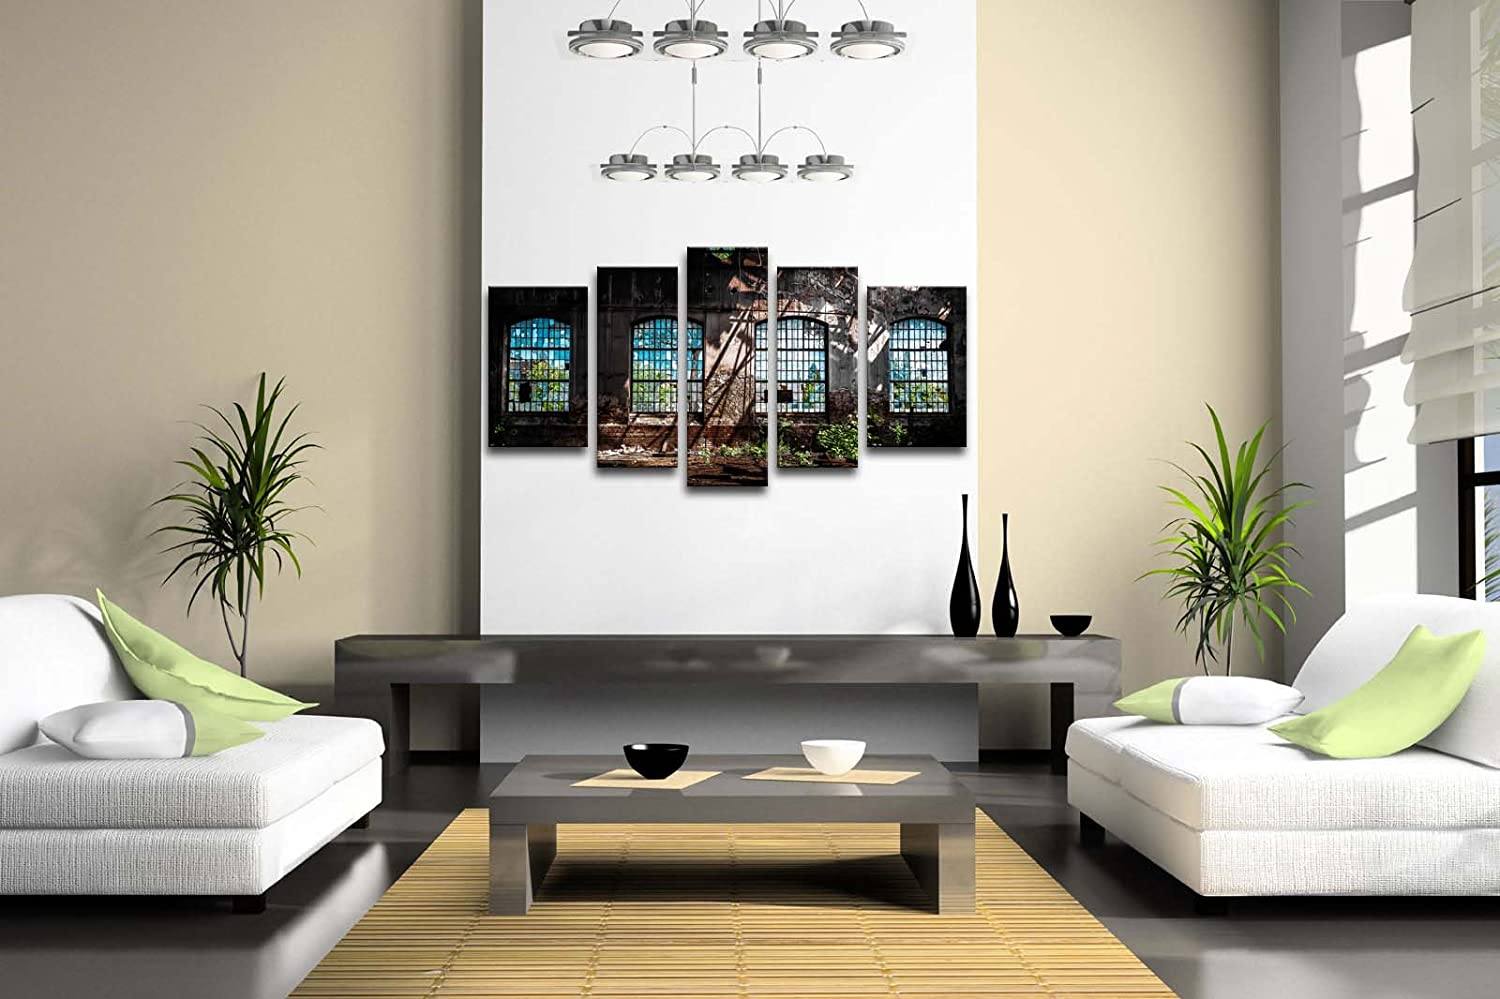 Amazon.com: 5 Panel Wall Art Abandoned Industrial Interior With ...